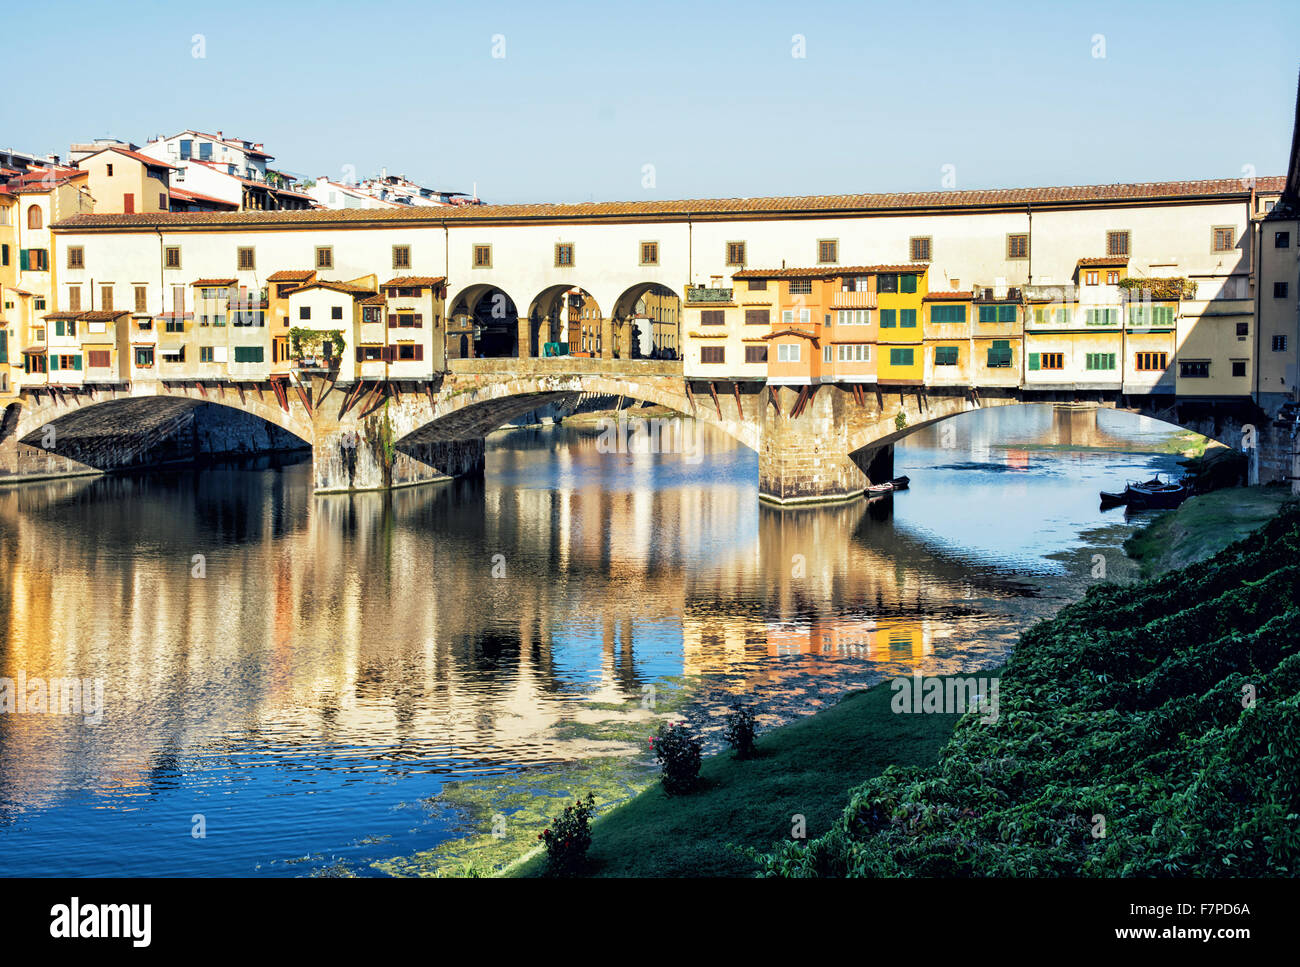 Beautiful Ponte Vecchio is mirroring in the river Arno, Florence, Tuscany, Italy. Travel destination. Vibrant colors. - Stock Image